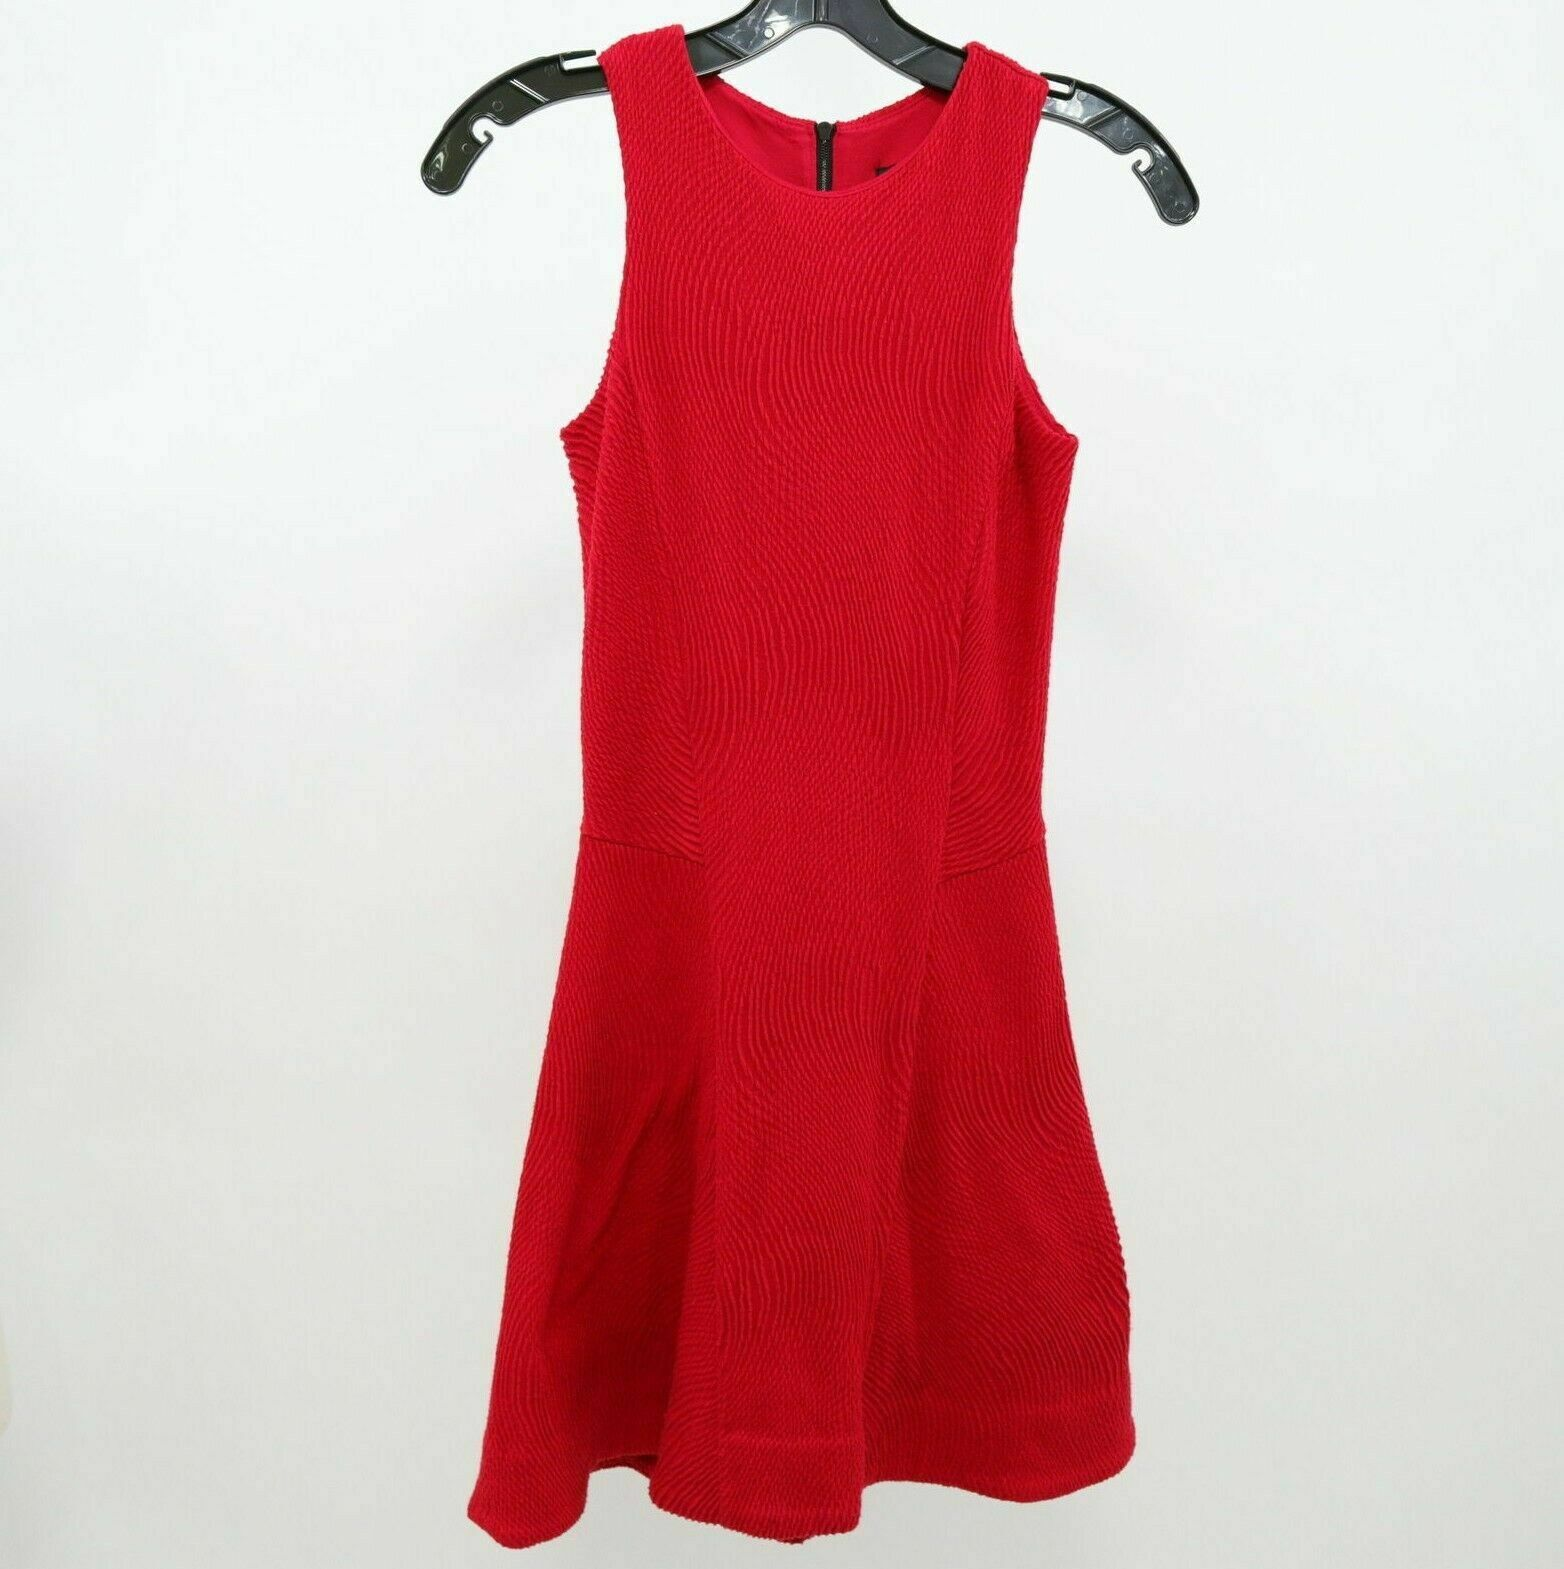 Rag & Bone Dress Fit Flare damen XXS 2XS rot Sleeveless Stretch